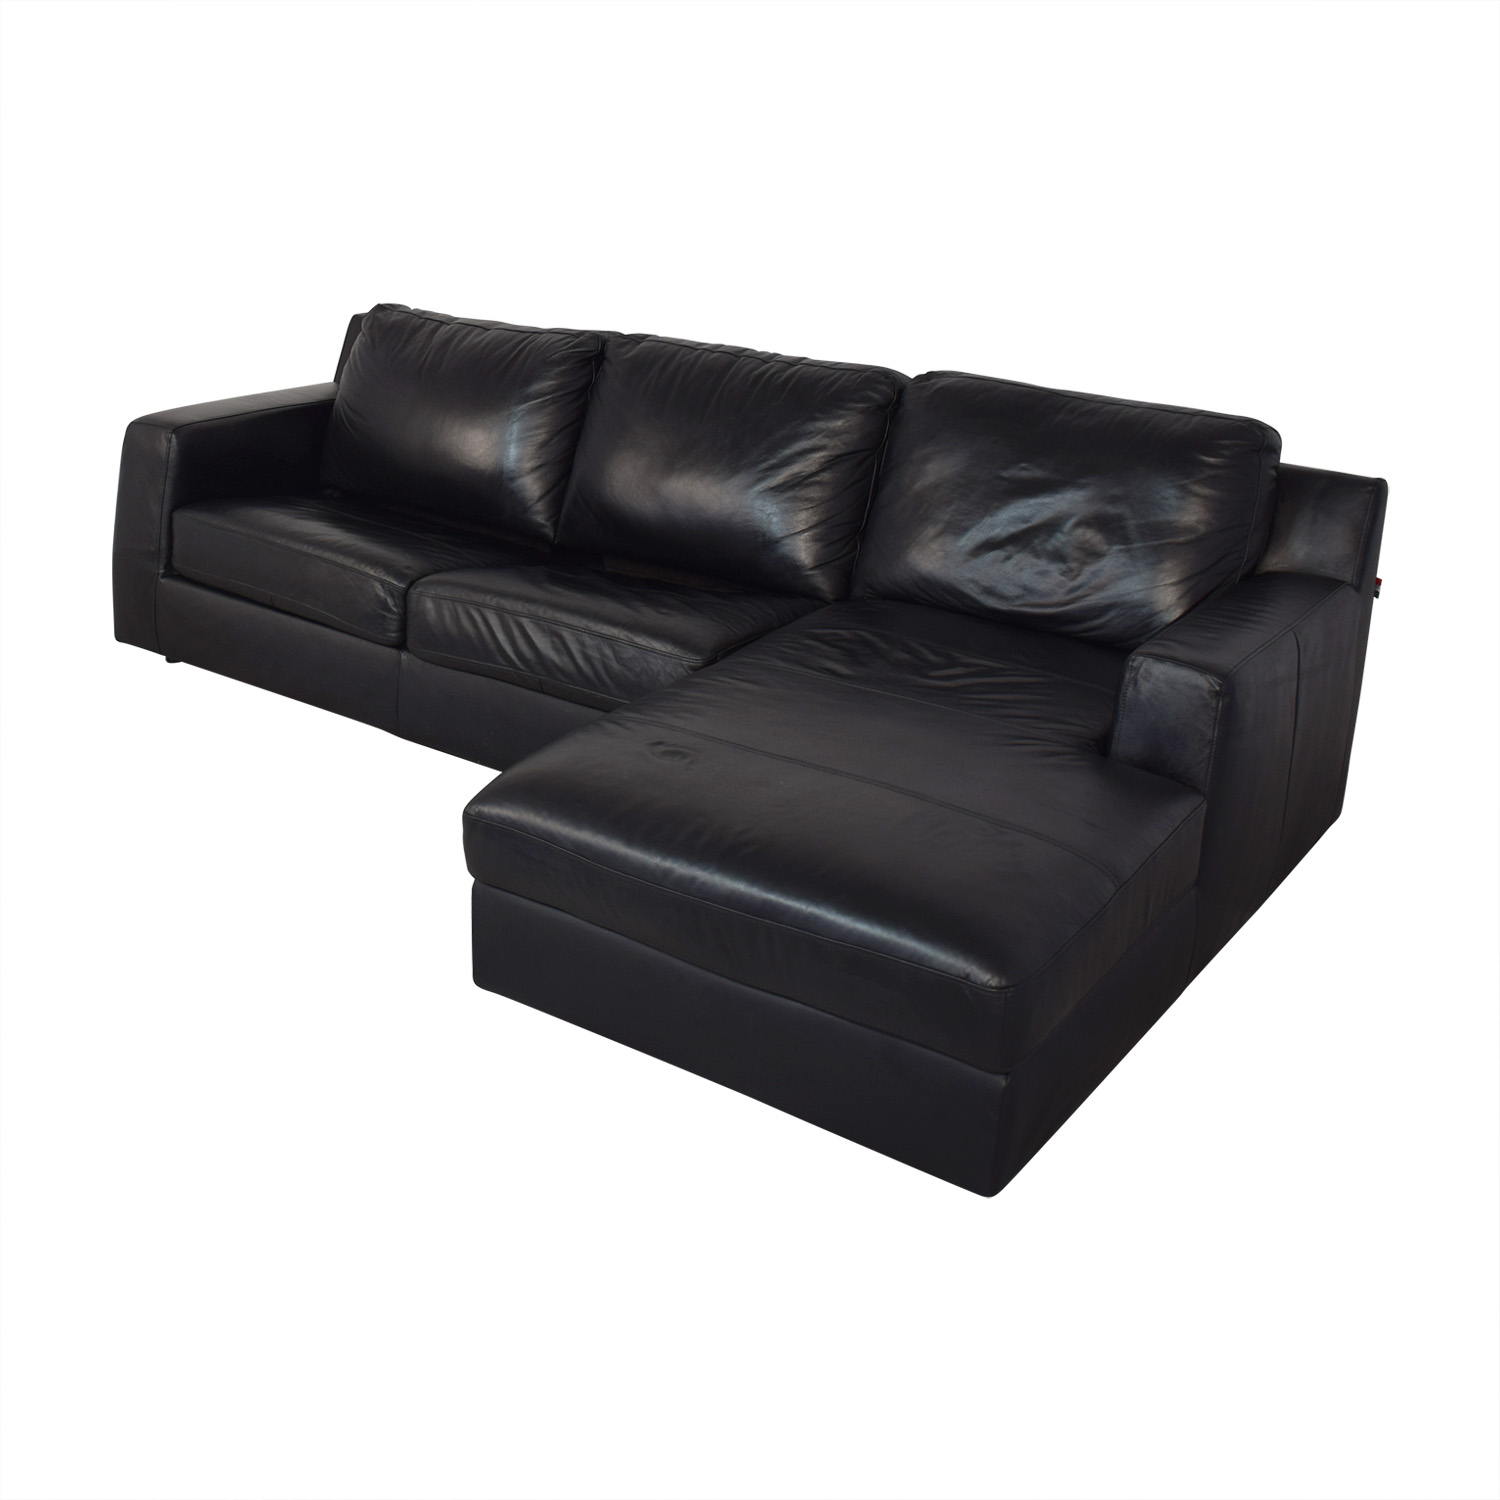 J&M Furniture J&M Furniture Elizabeth Sleeper Sectional Sofa on sale